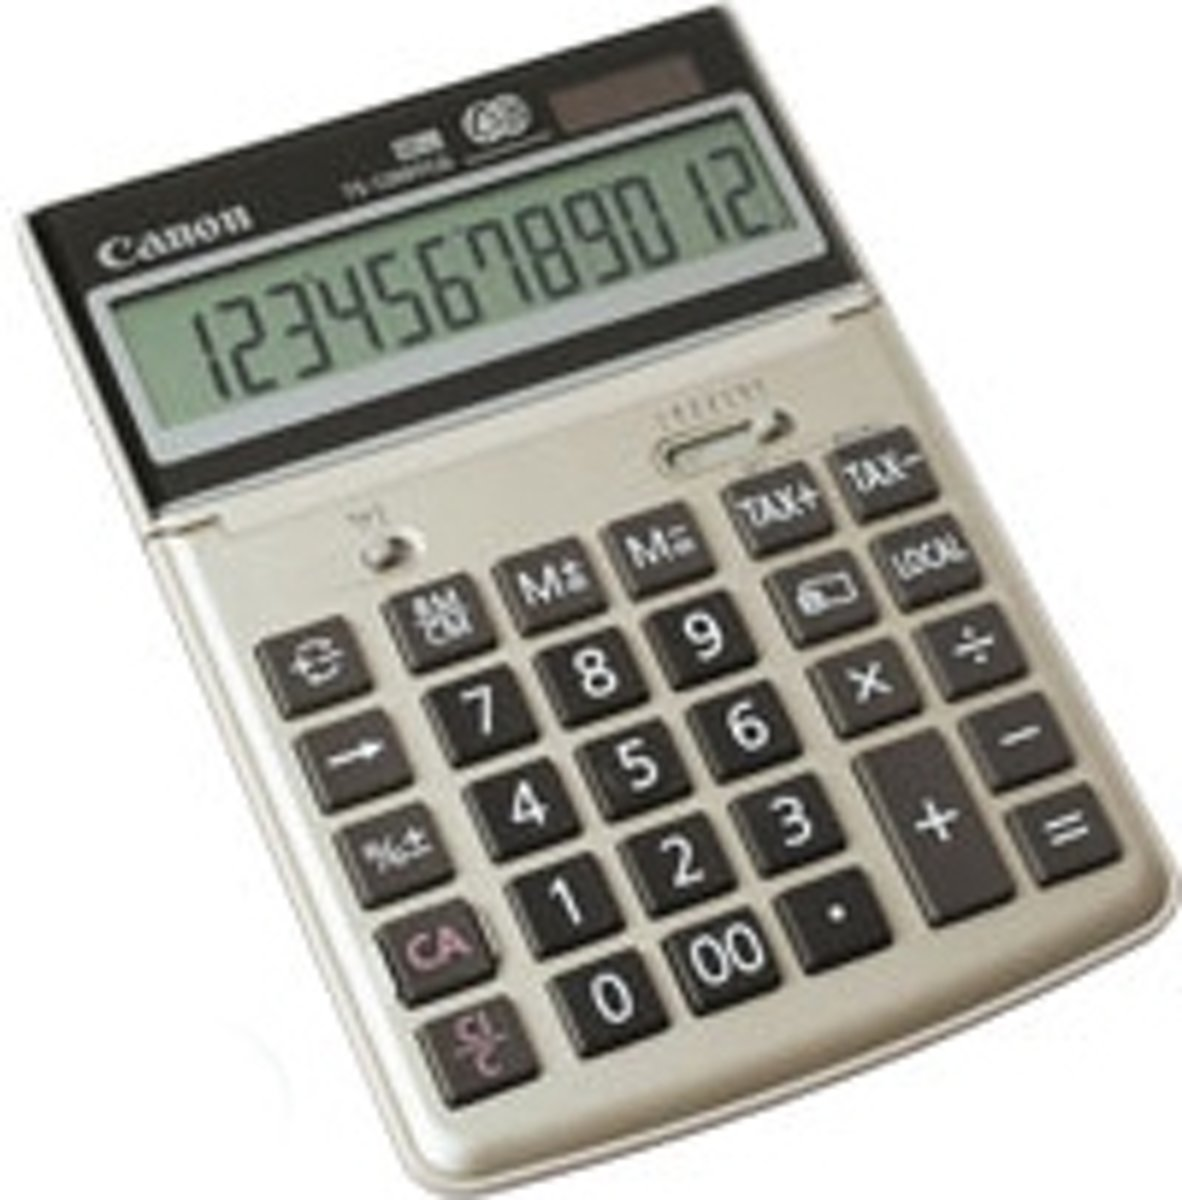 TS-1200TCG Desktop calculator